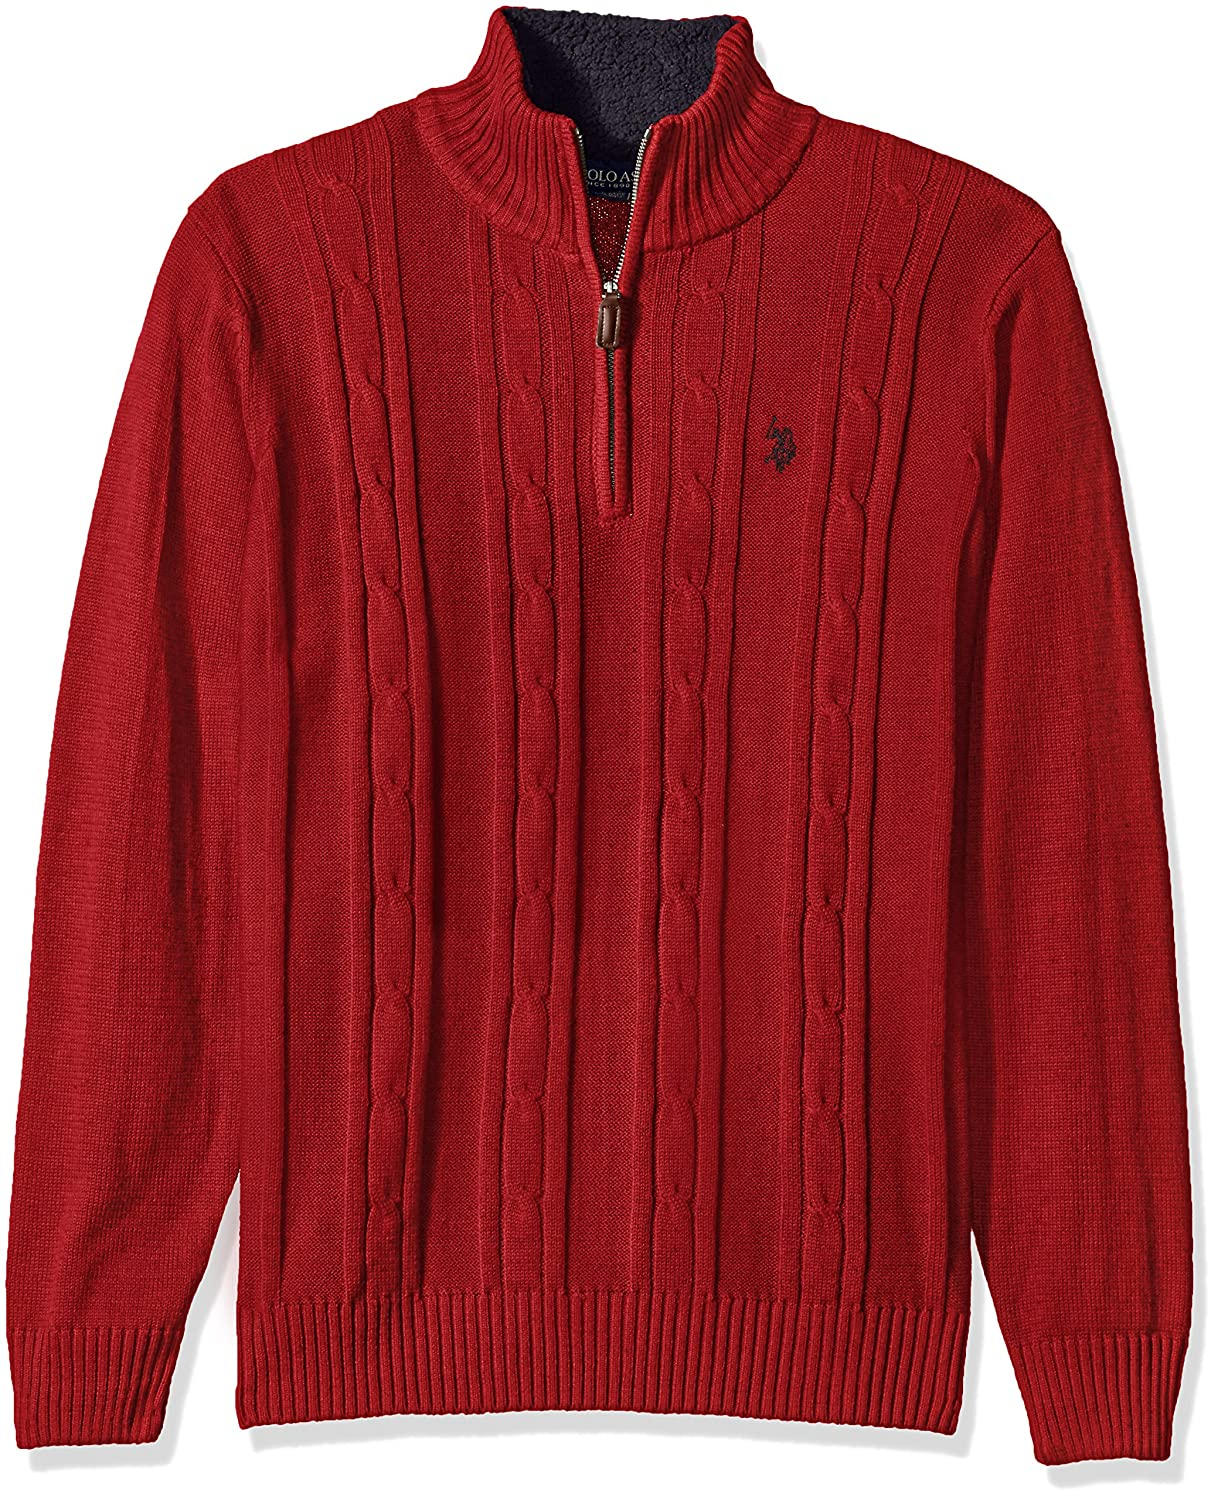 U.S. Polo Assn. Men's Solid Cable 1/4 Zip Sweater, ACUSR5712